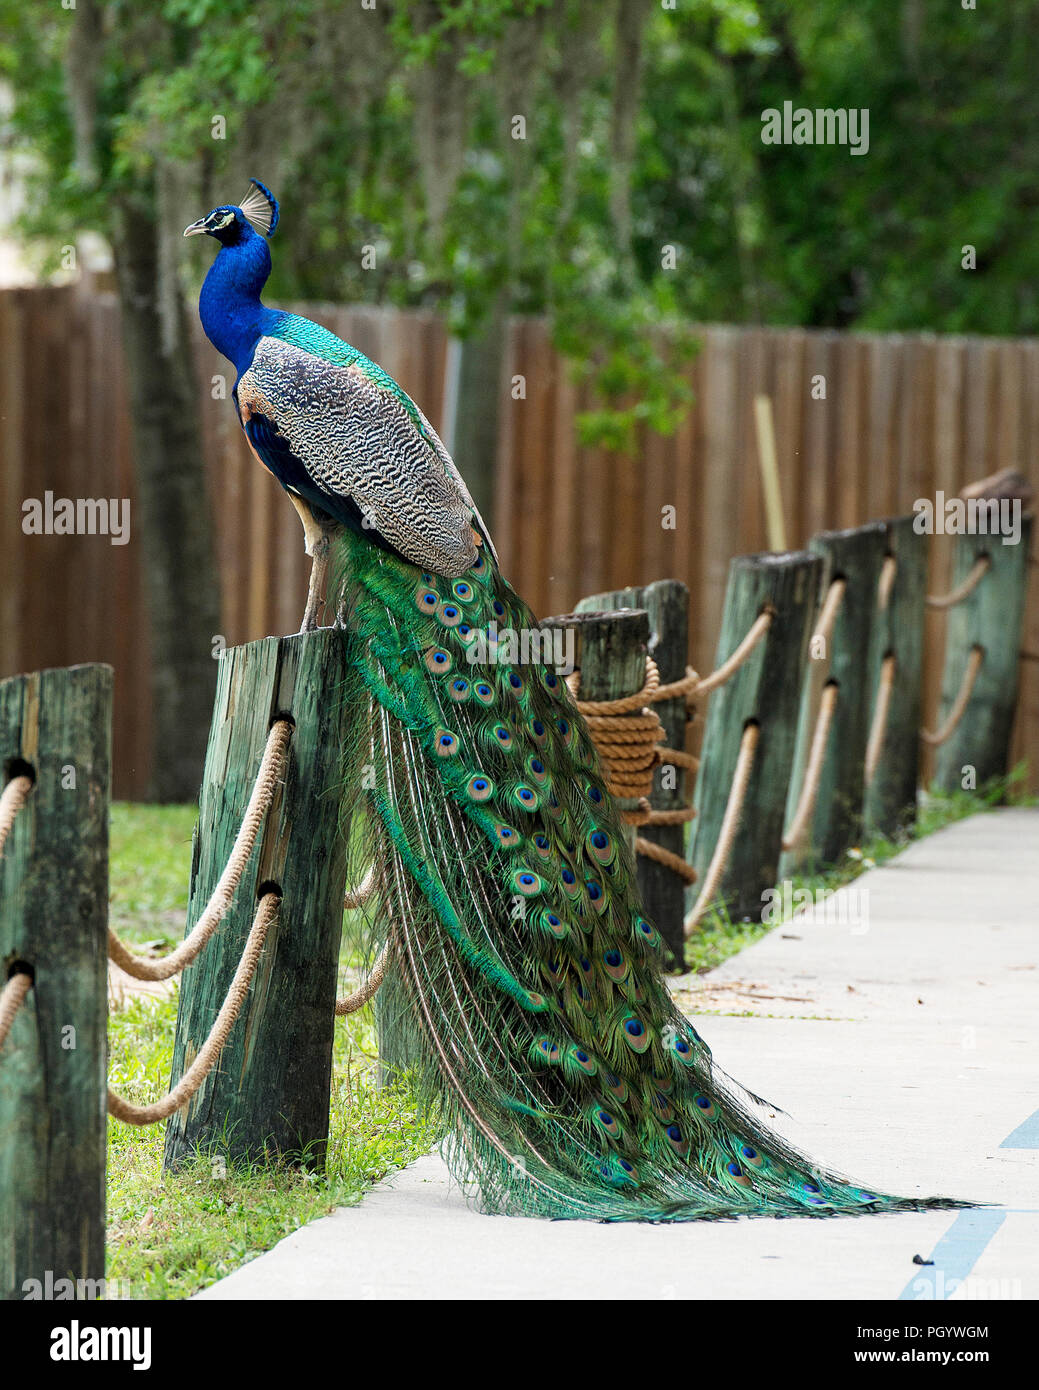 Peacock bird displaying its beautiful and colorful blue & green plumage tail with eyespots. Stock Photo